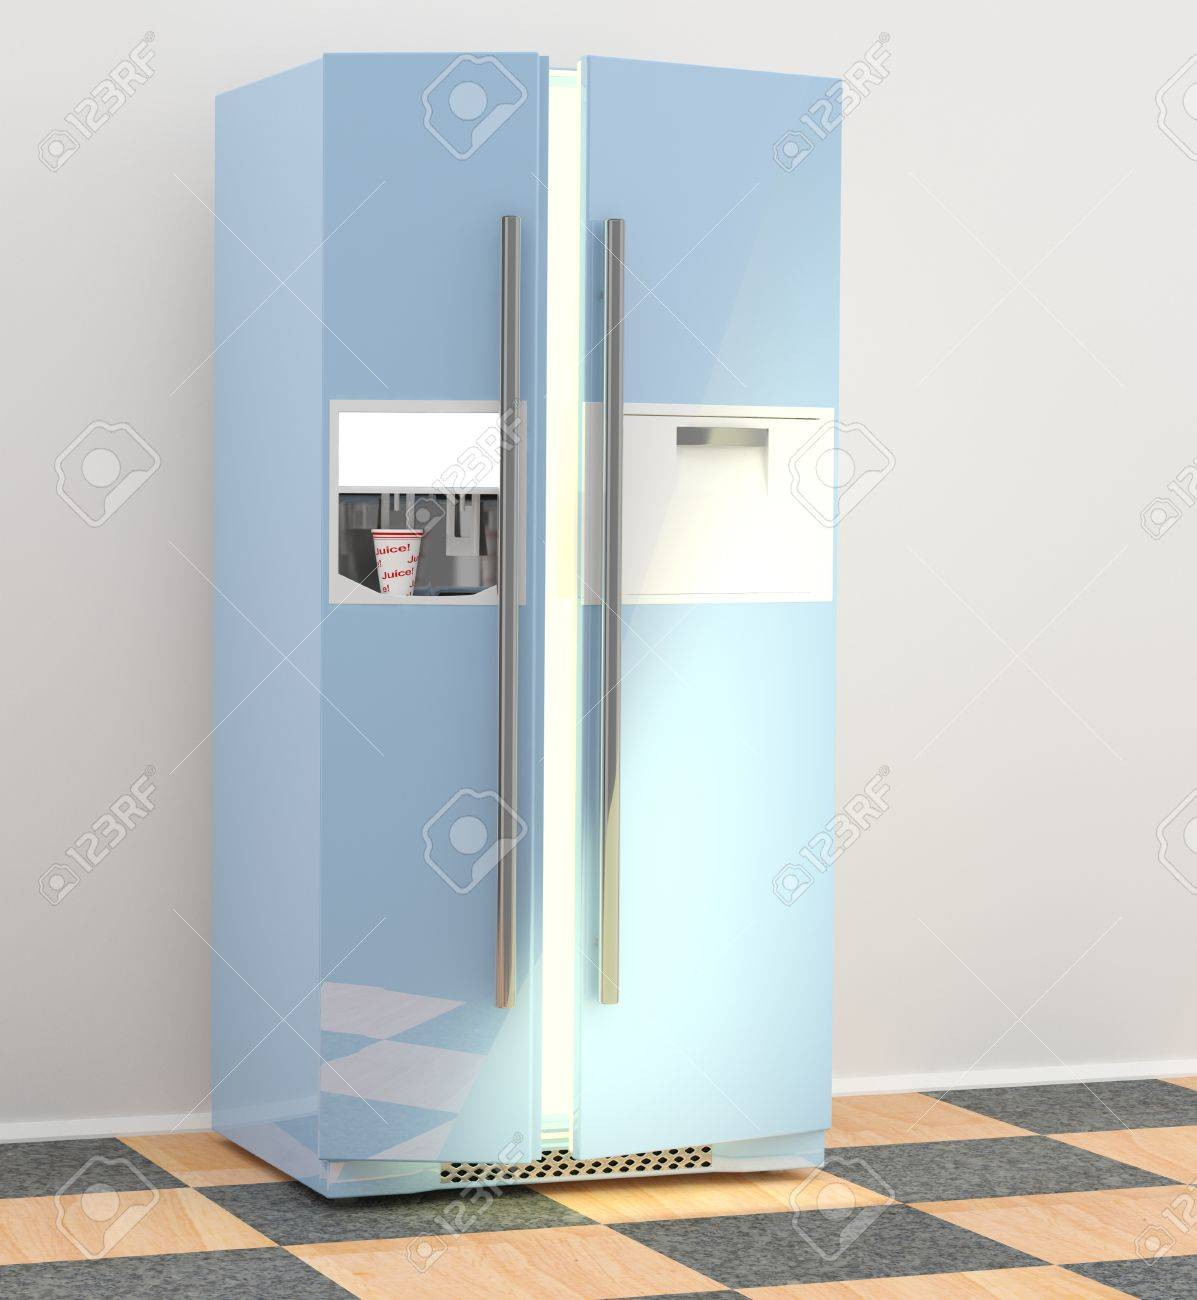 Refrigerator In Kitchen. 3D Model Of Fridge Stock Photo, Picture And ...